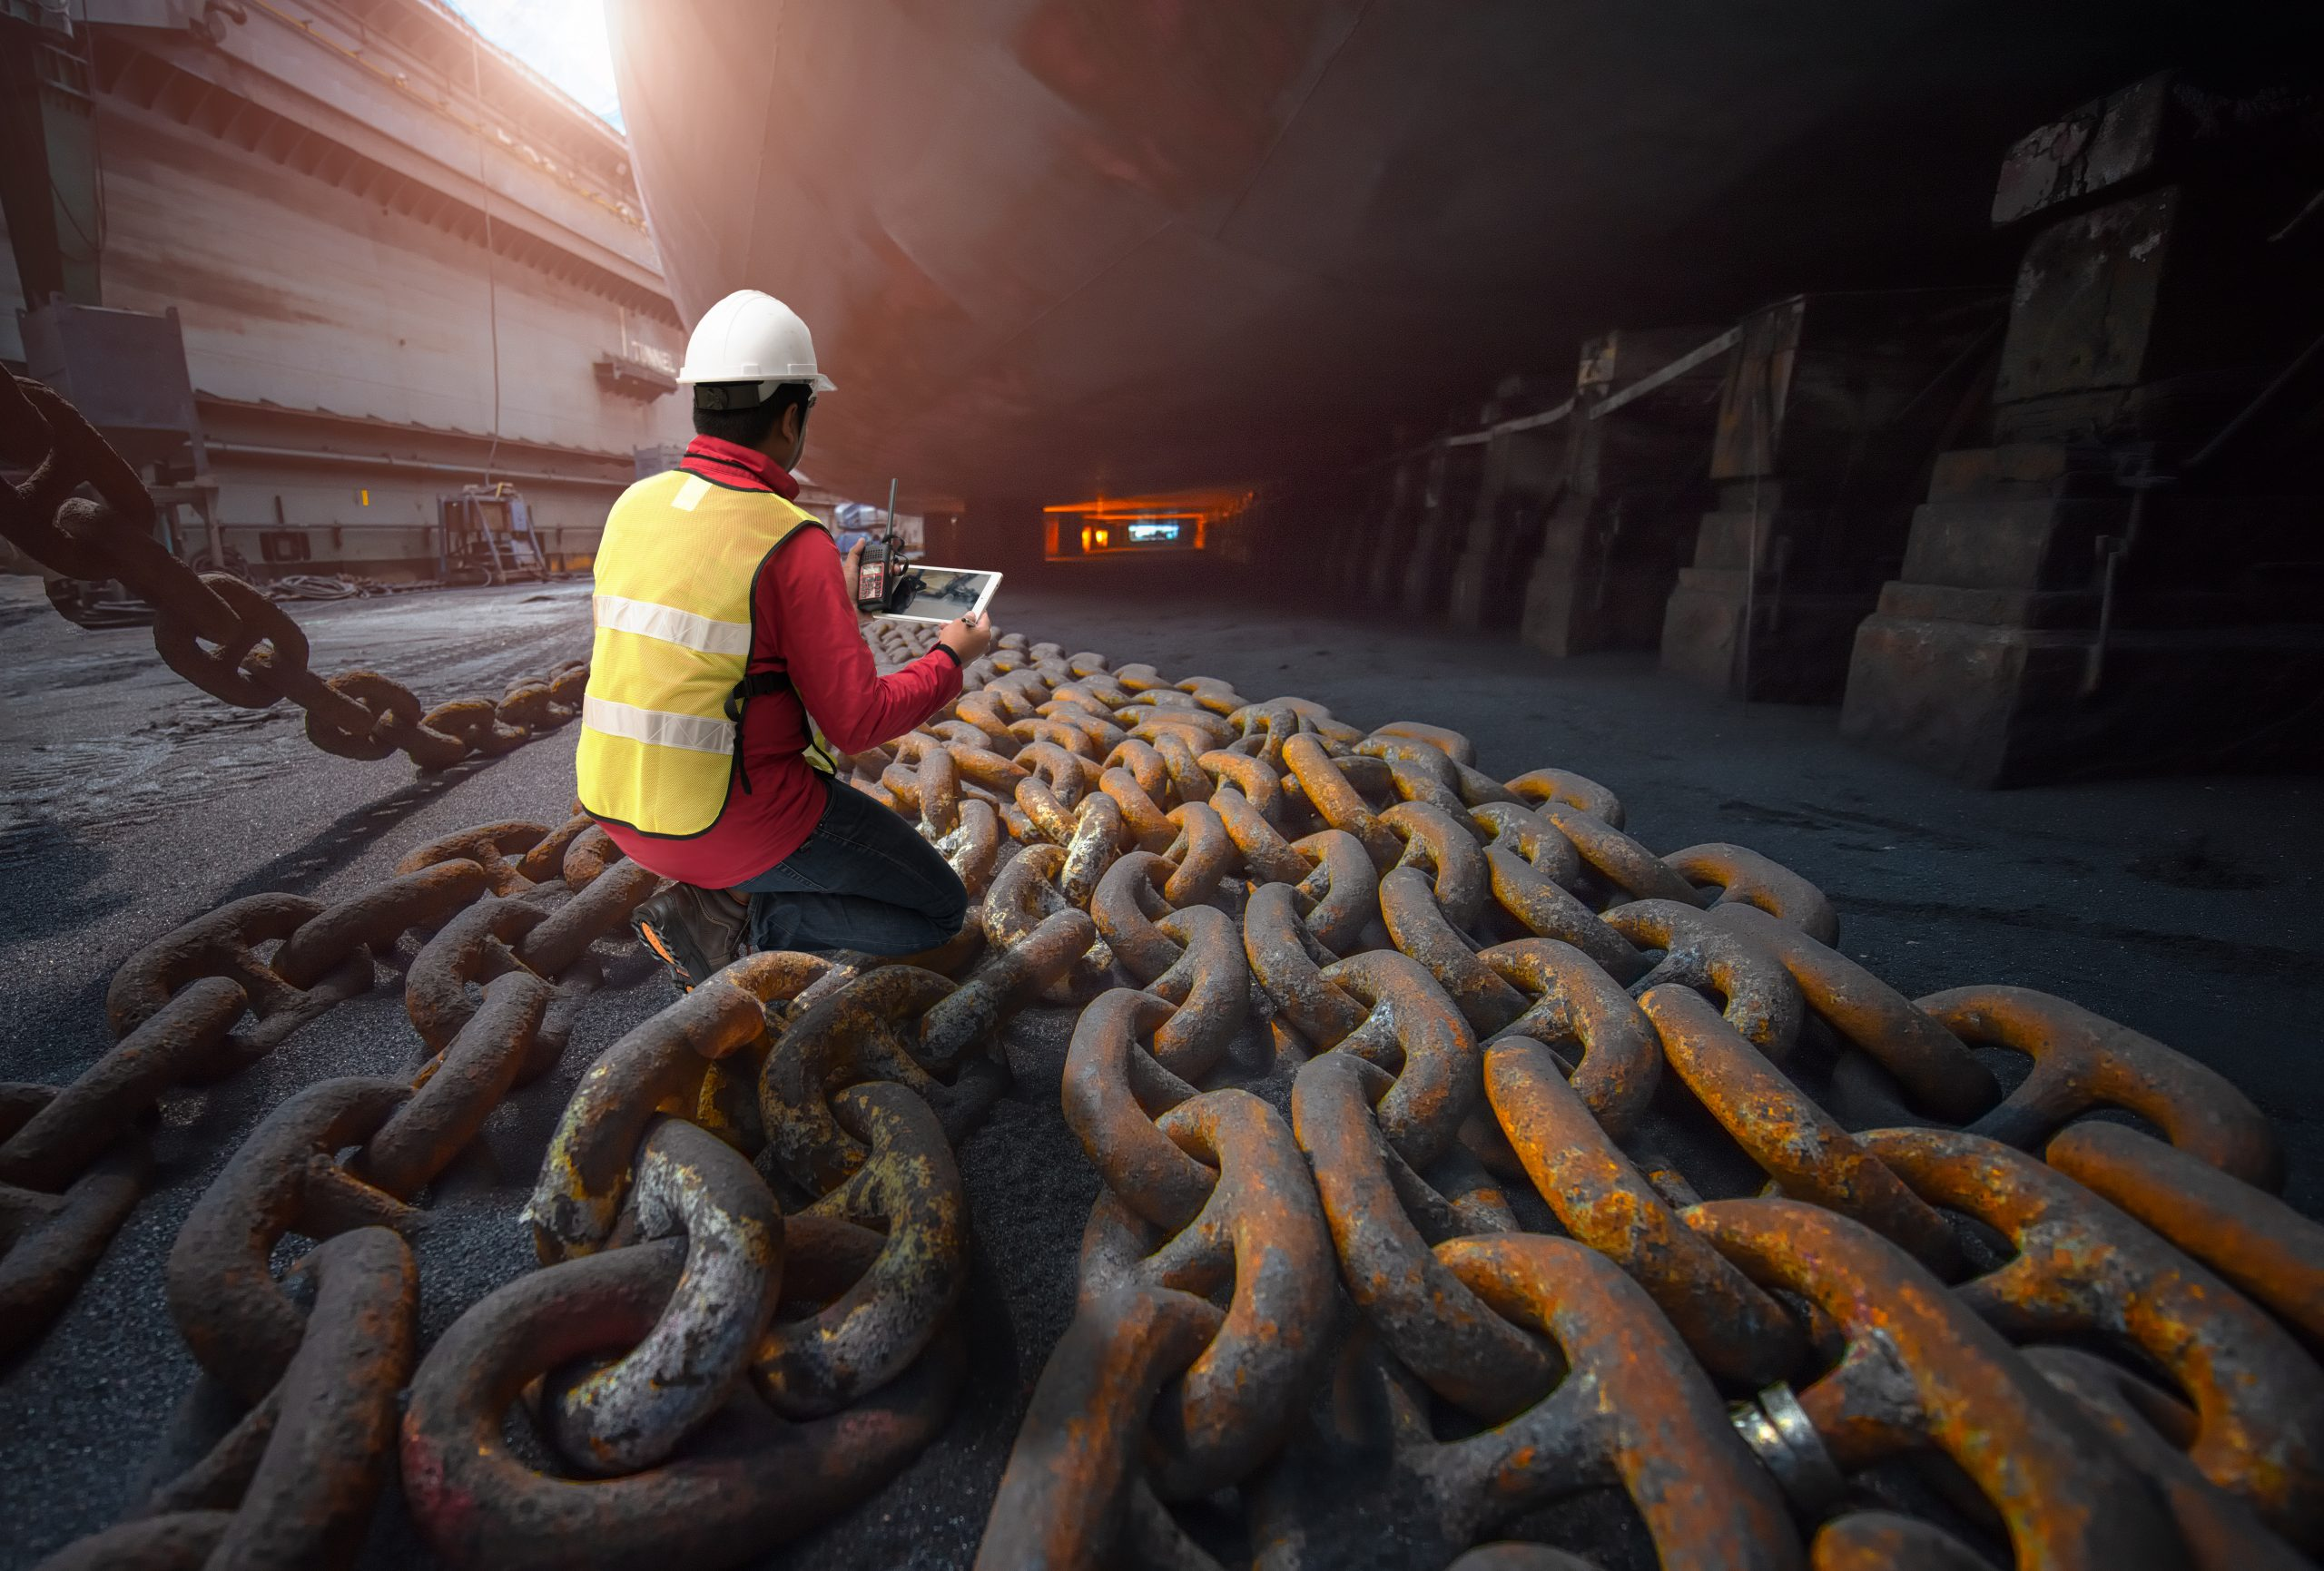 Worker minding heavy chains